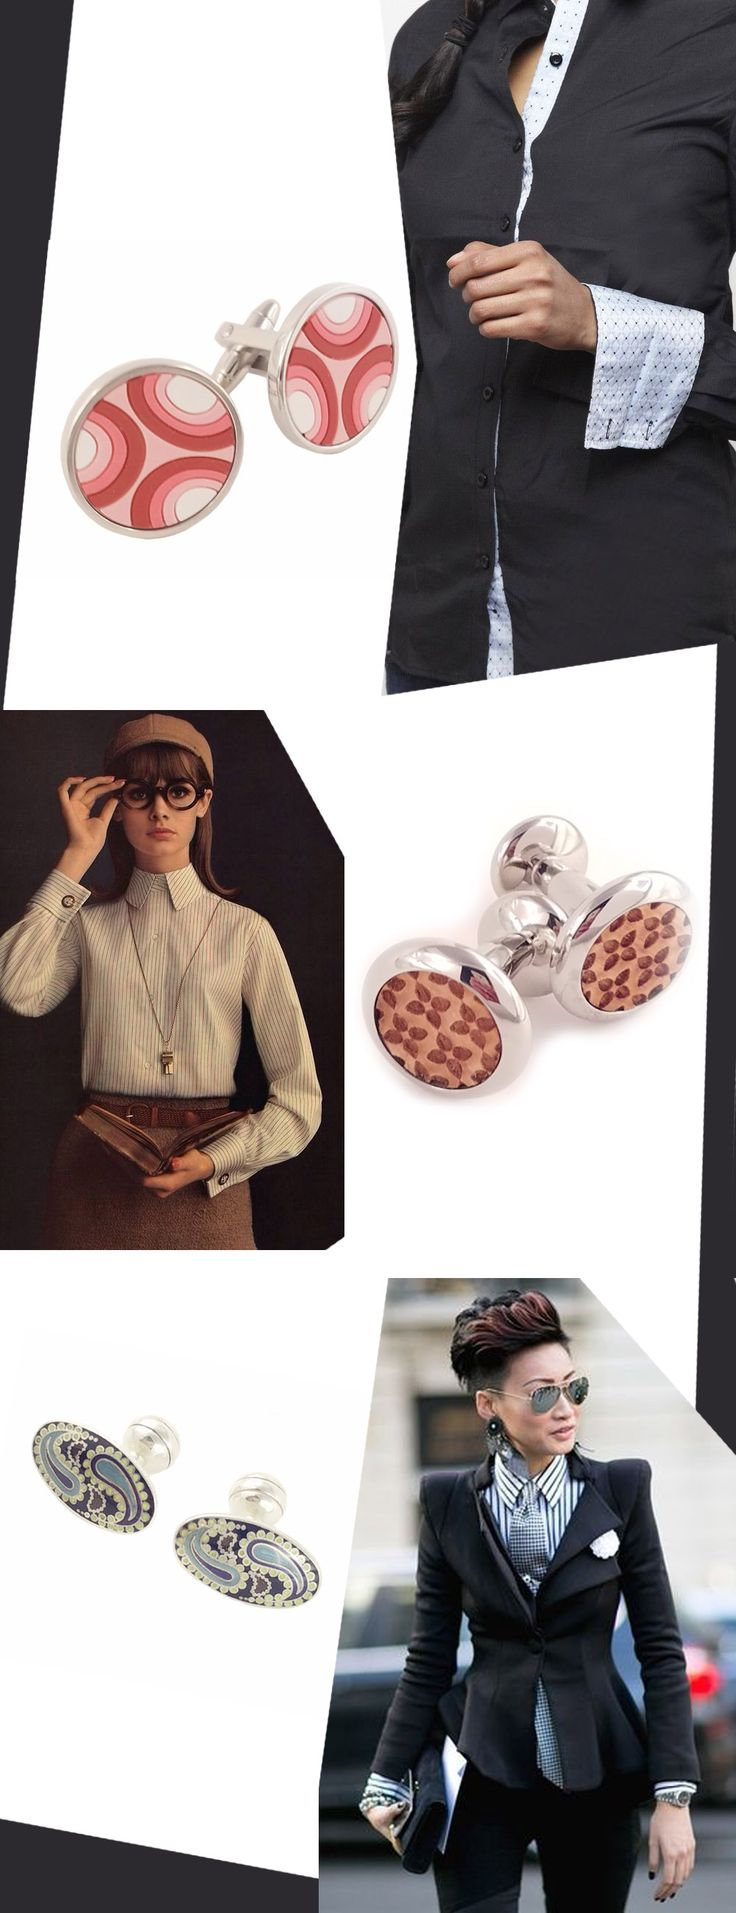 We are seeing more and more women wearing suits and shirts with cufflinks. Shown here are some great ideas to finish your outfit. Top is Red Jax Cufflinks by Imooi. $52.  Middle is Oval Petal Wood by Imooi. $60. Bottom is Sterling Silver Oval Paisley by Duchamp London. $192.50. All styles available on our website.  #fashion #tips #women #woman #womens #shirt #jewelry #designer #style #shopping #accessories #cufflinks